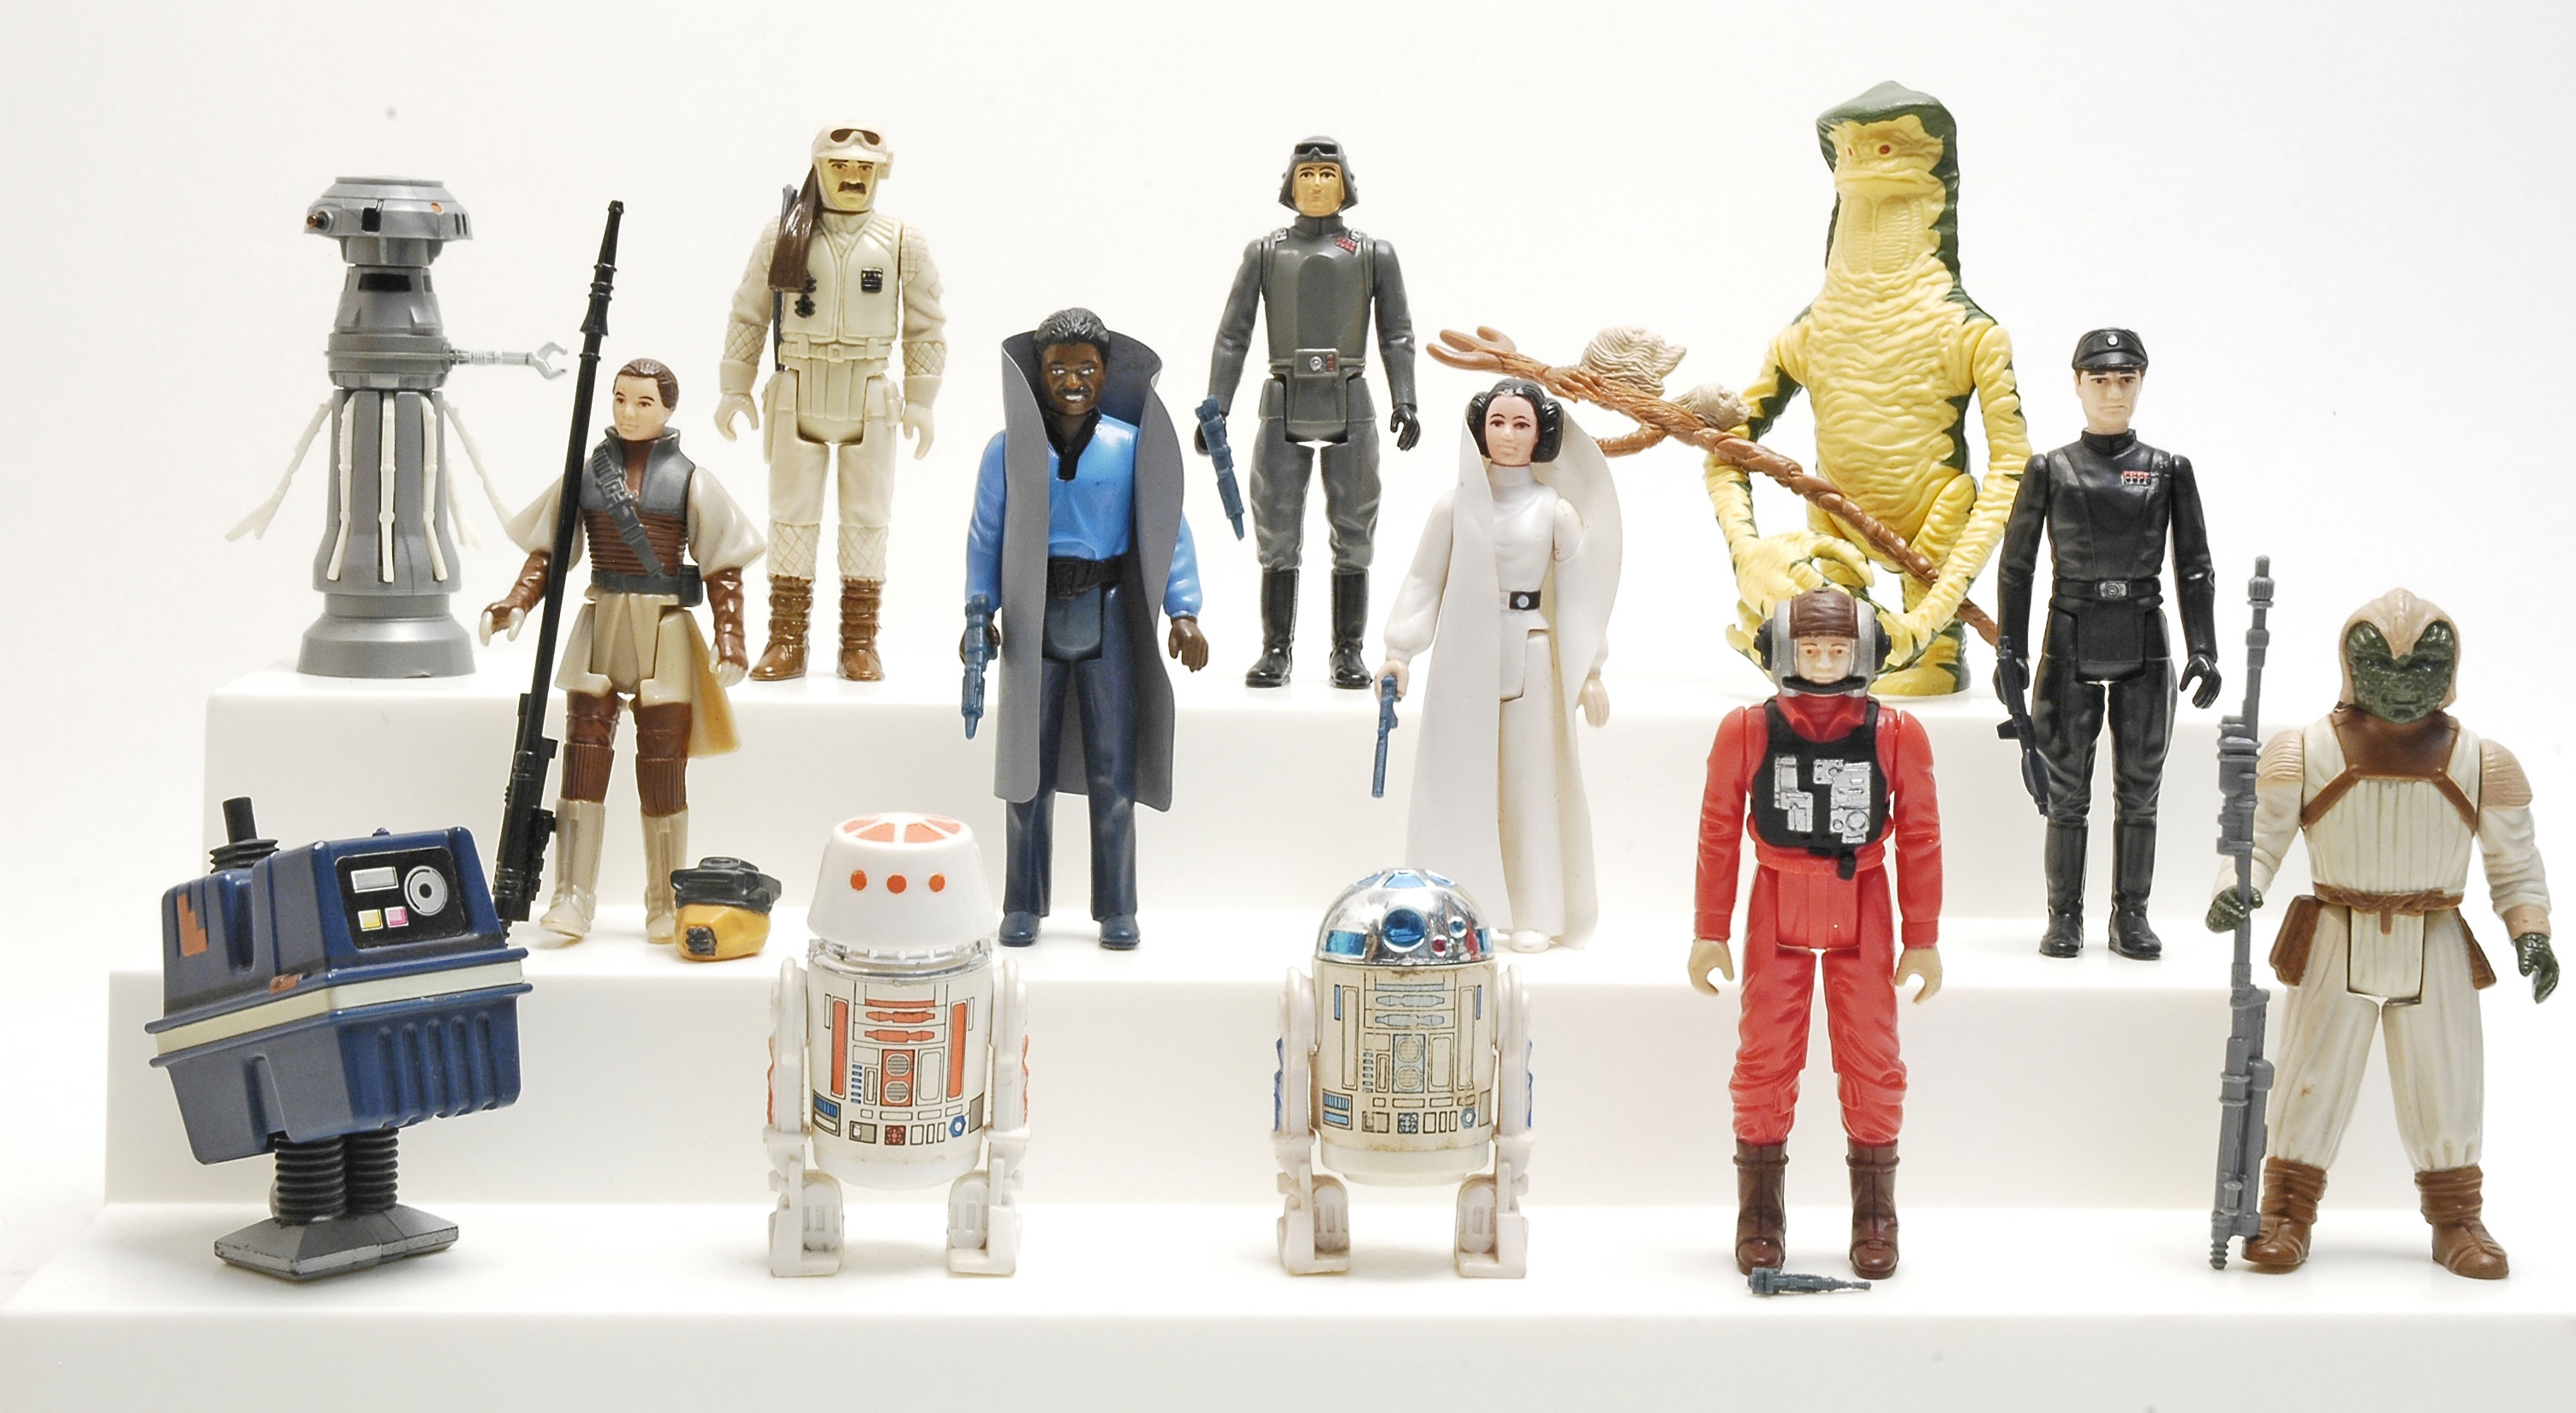 Star Wars Toys : How to instantly own the world s coolest star wars action